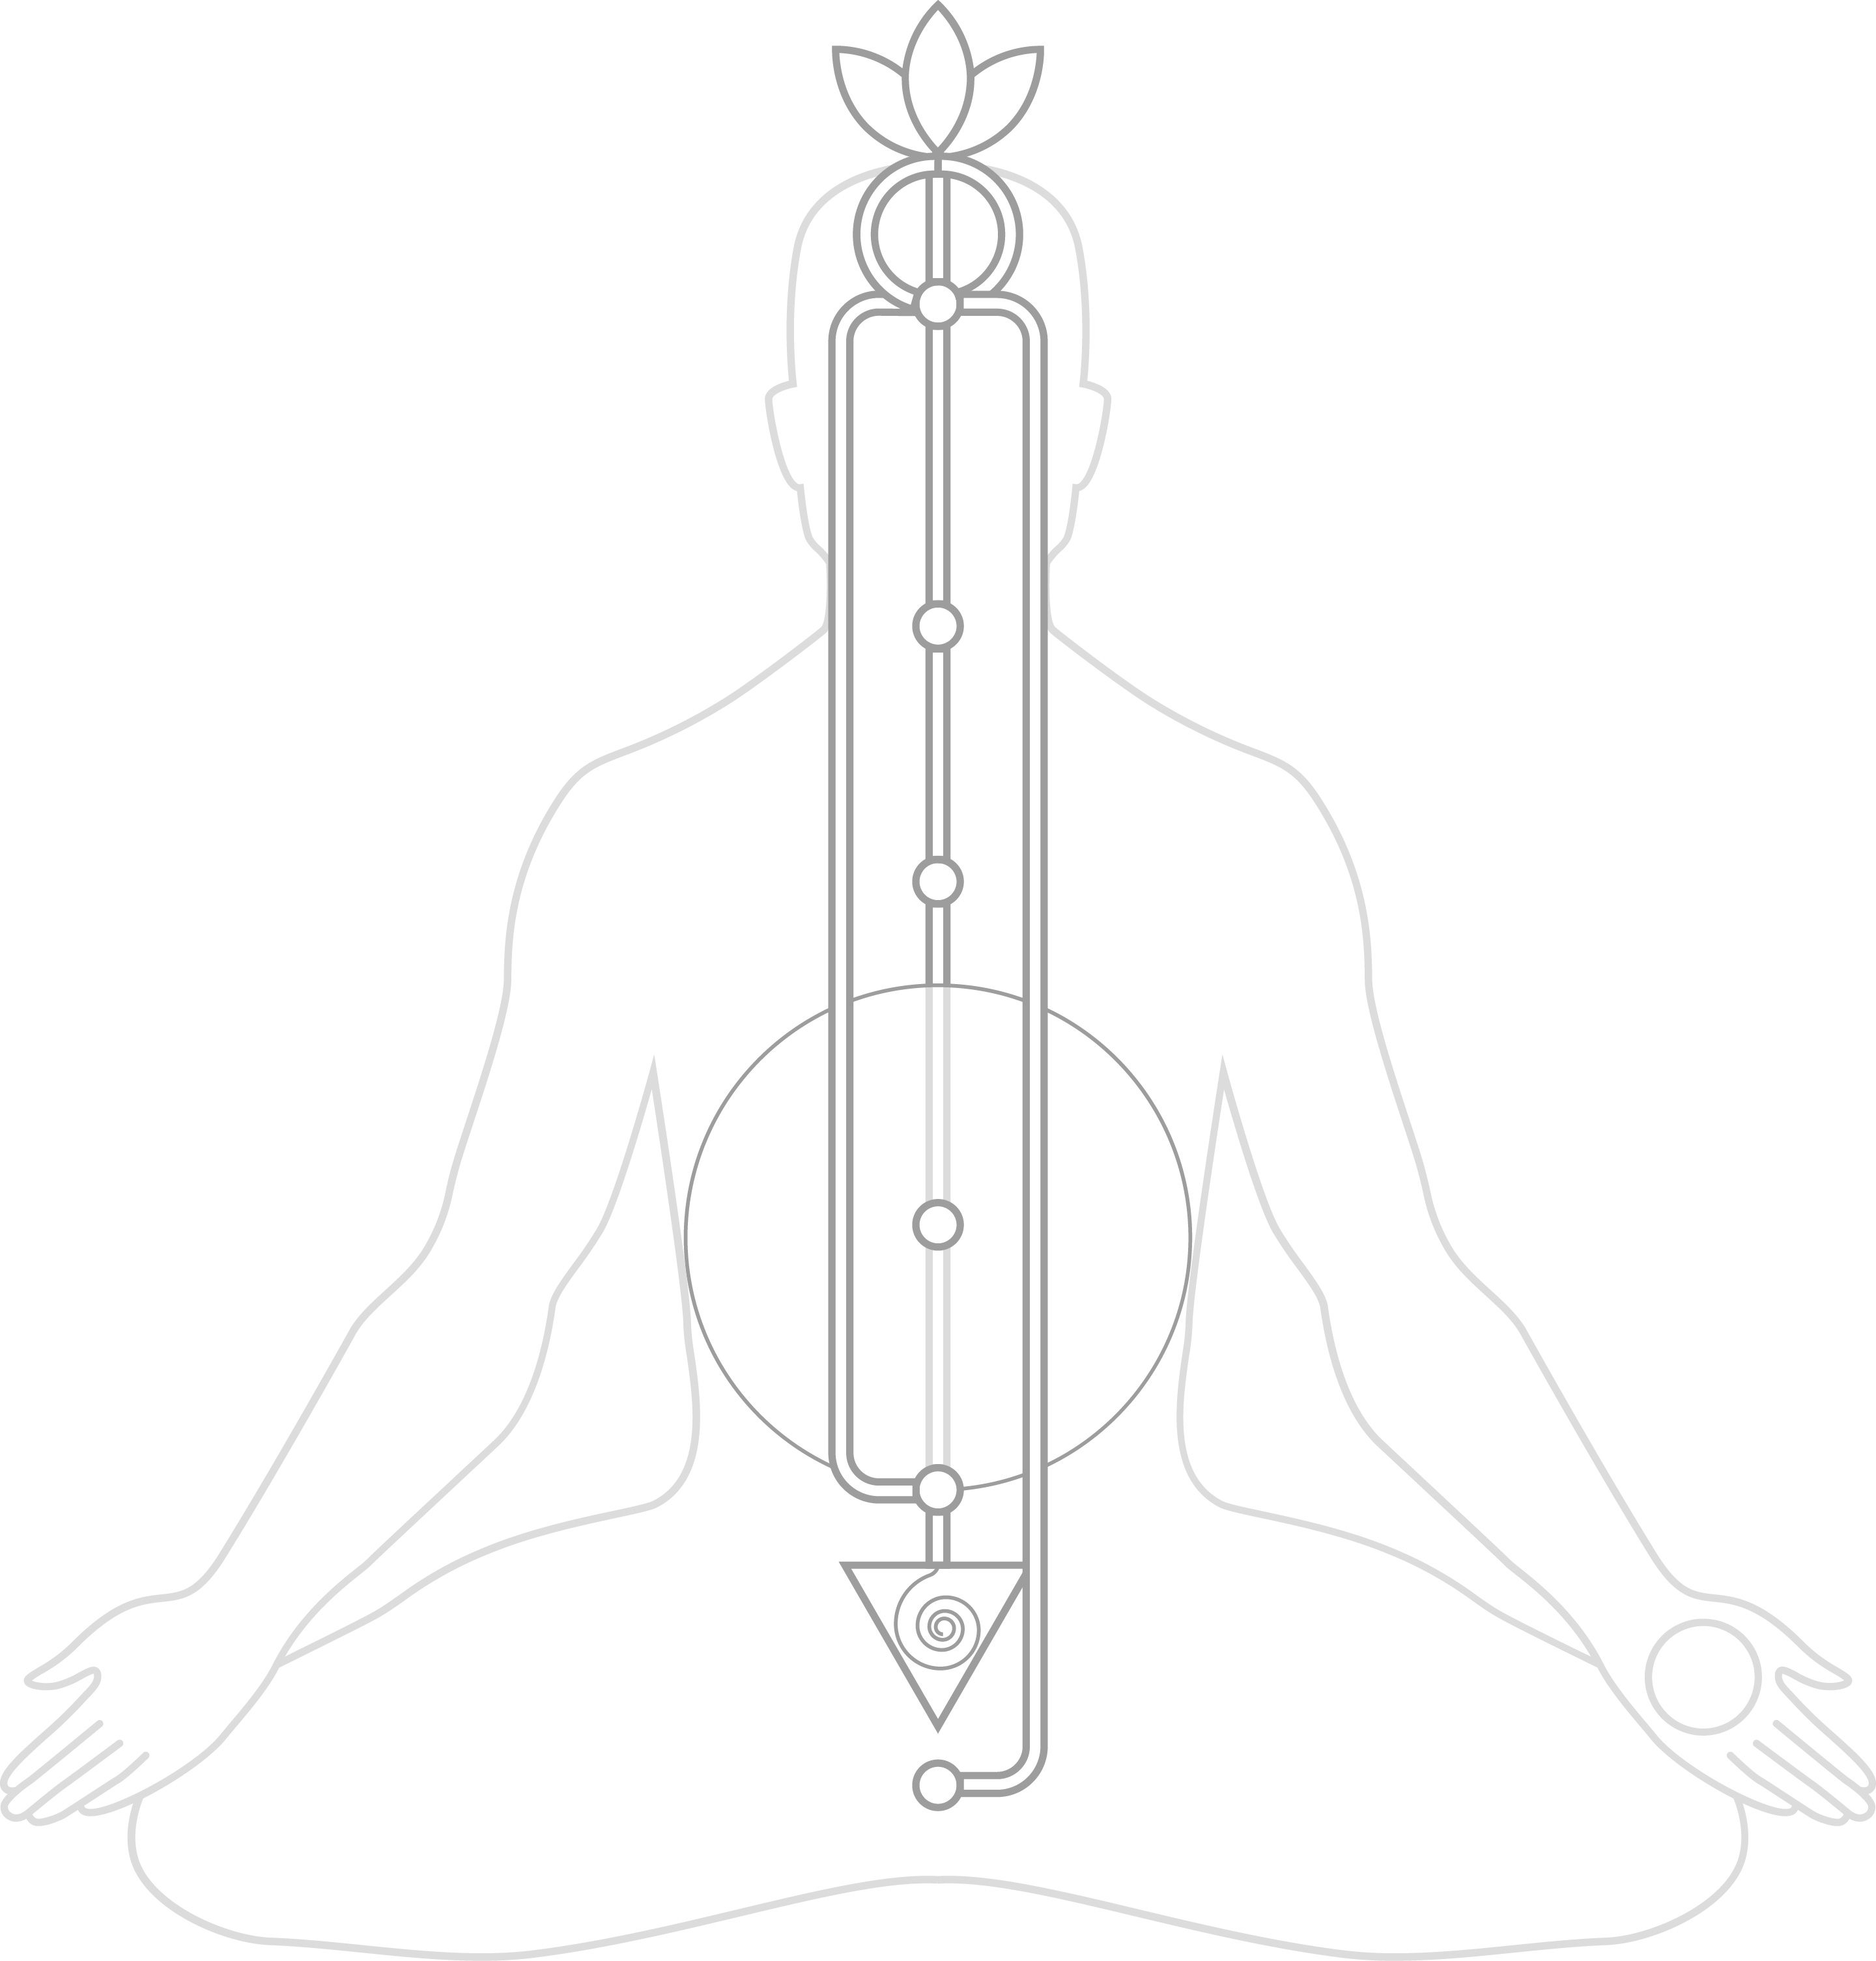 Diagram of the subtle body: An outline of a man sitting in meditation with three vertical lines along the spine representing the left, right and central channels. Along the central line there are six energy centres shown as circles and the seventh centre is depicted as a lotus on the top of the head.